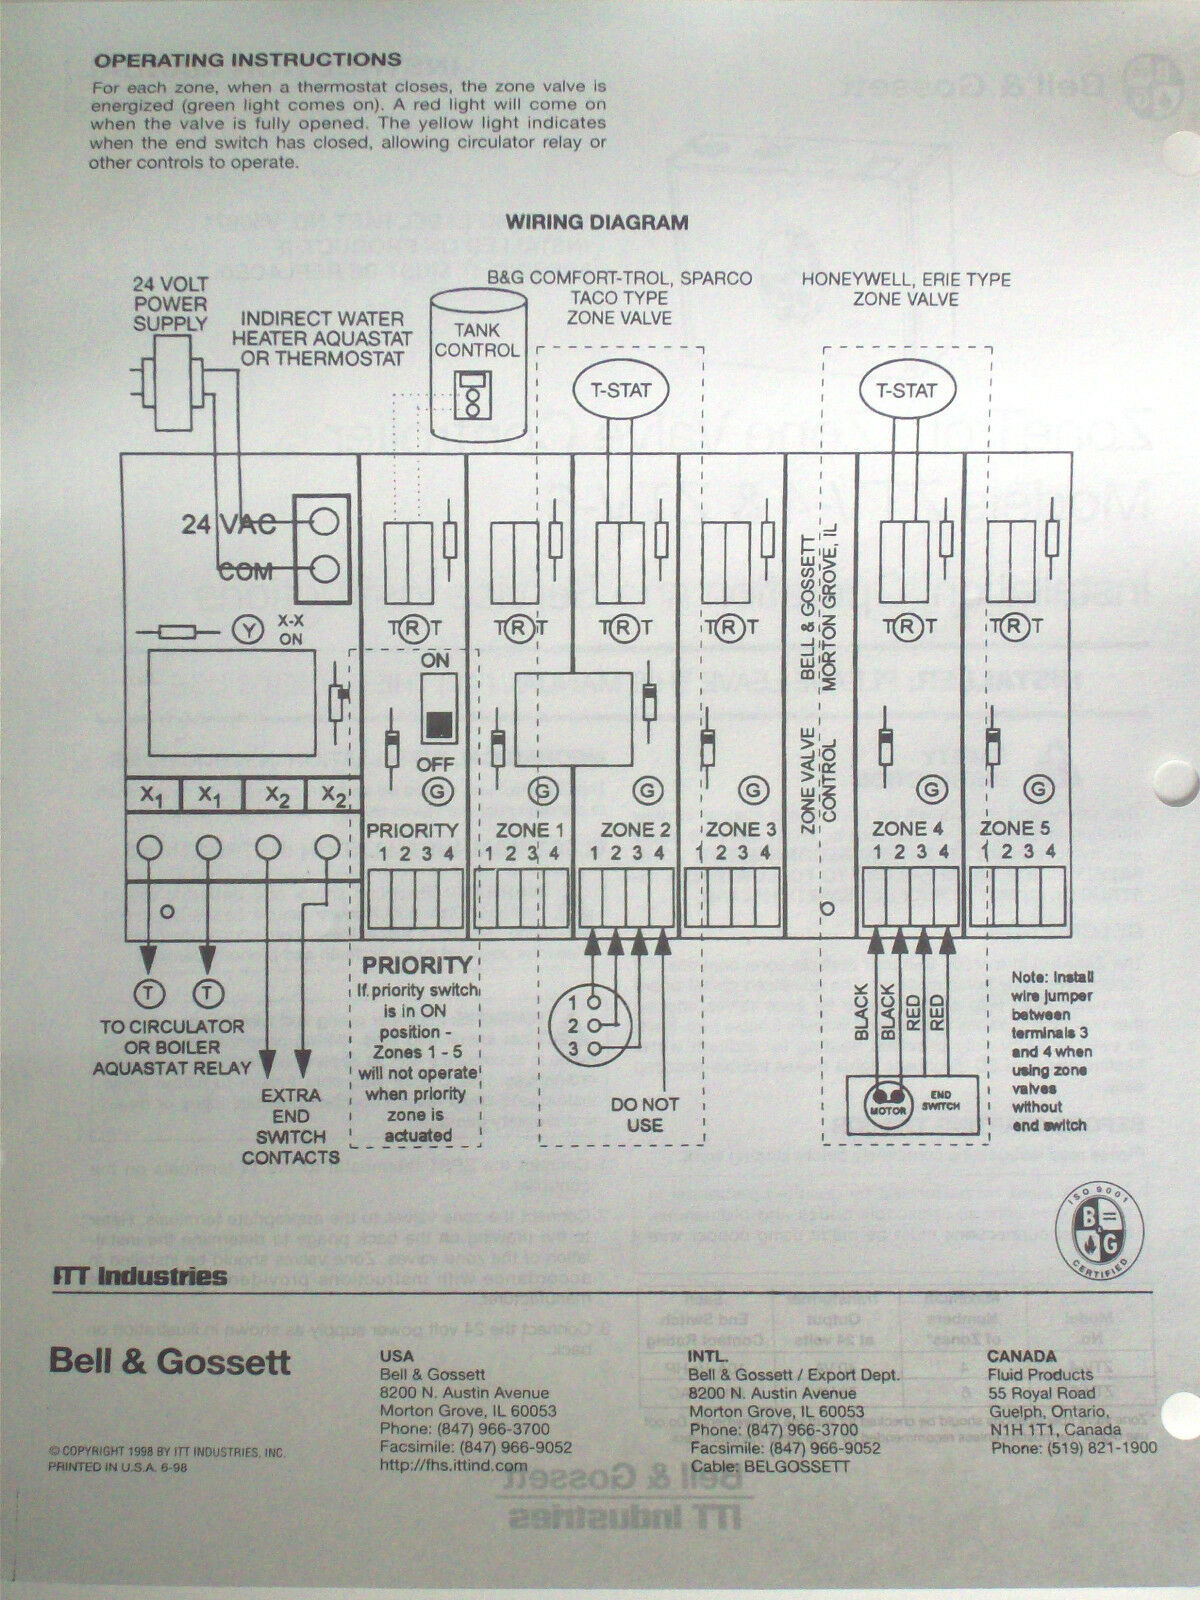 Taco Zone Valve Wiring Diagram Sentinal Circuit And Honeywell Boiler Valves 1 V8043e1012 4 Wire 24v